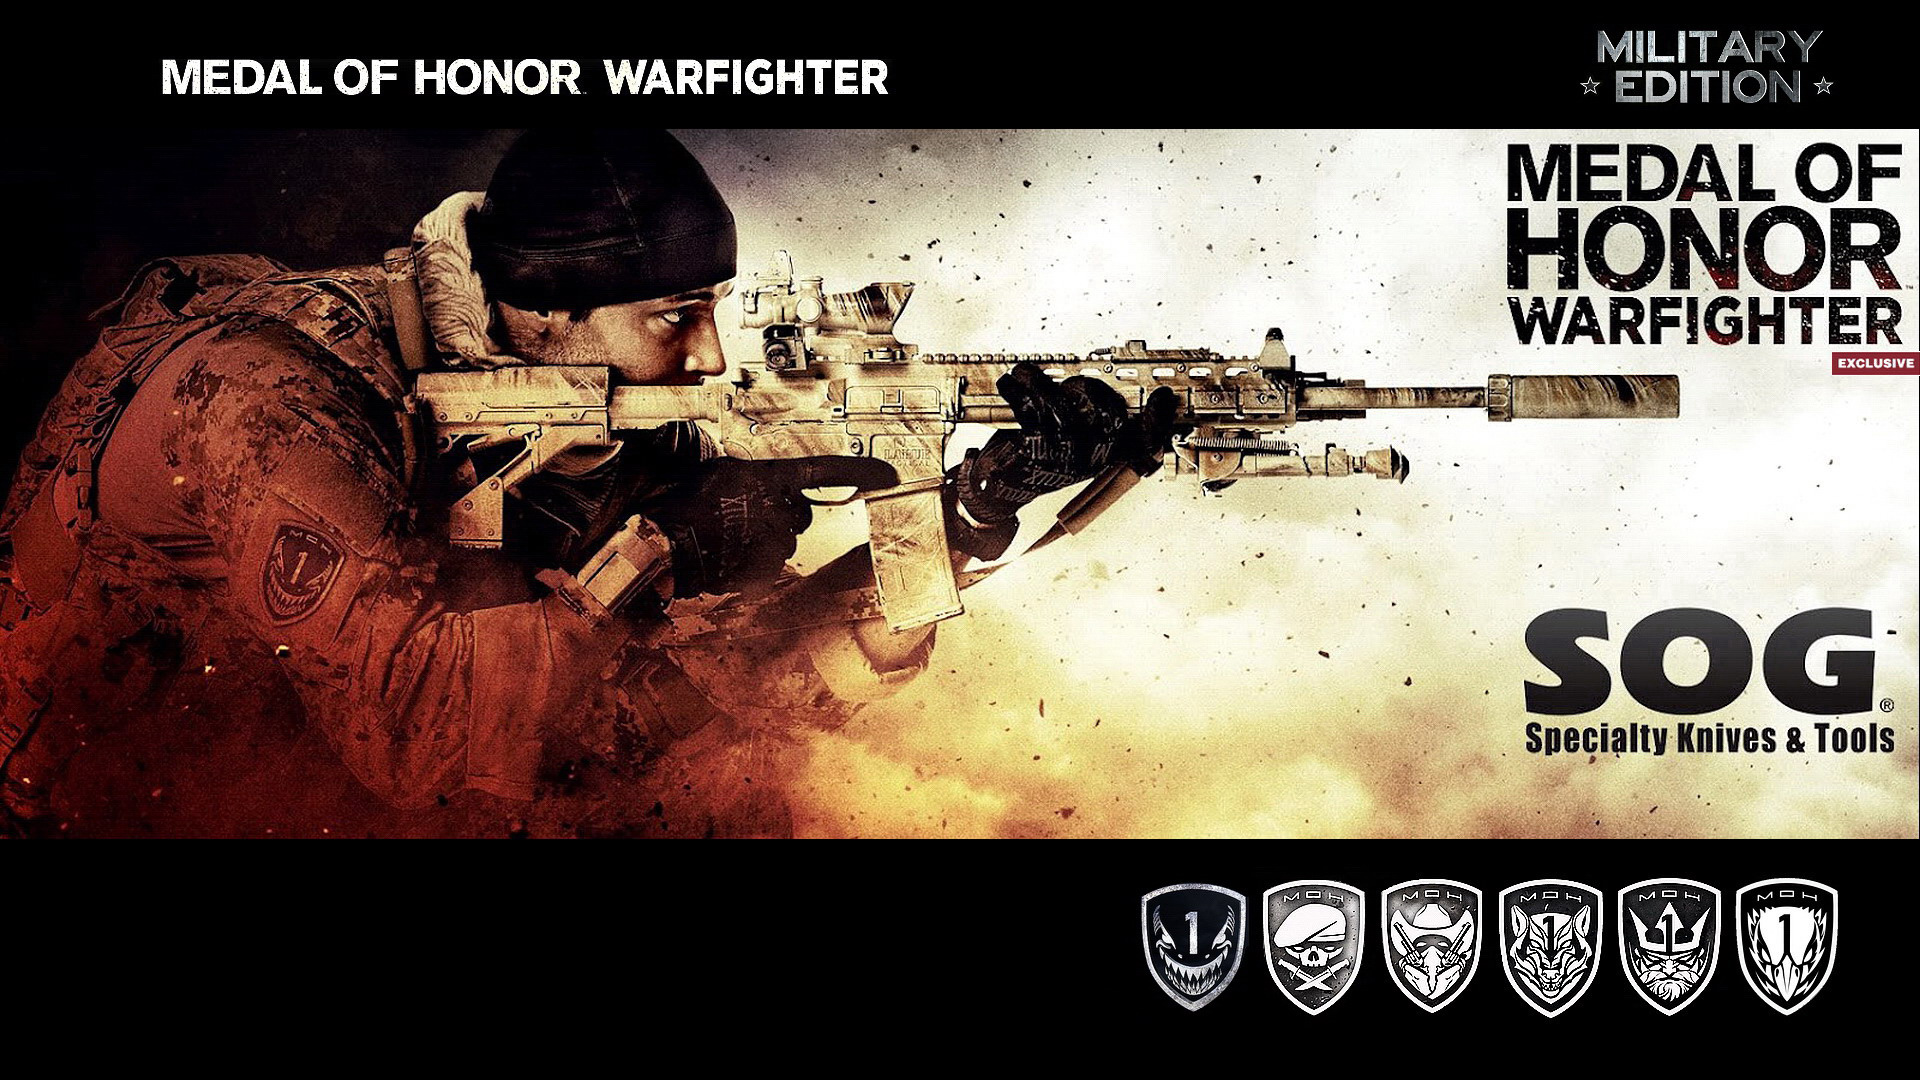 Medal Of Honor Warfighter Military Edition Wallpaper - Medal Of Honor Warfighter Seal , HD Wallpaper & Backgrounds